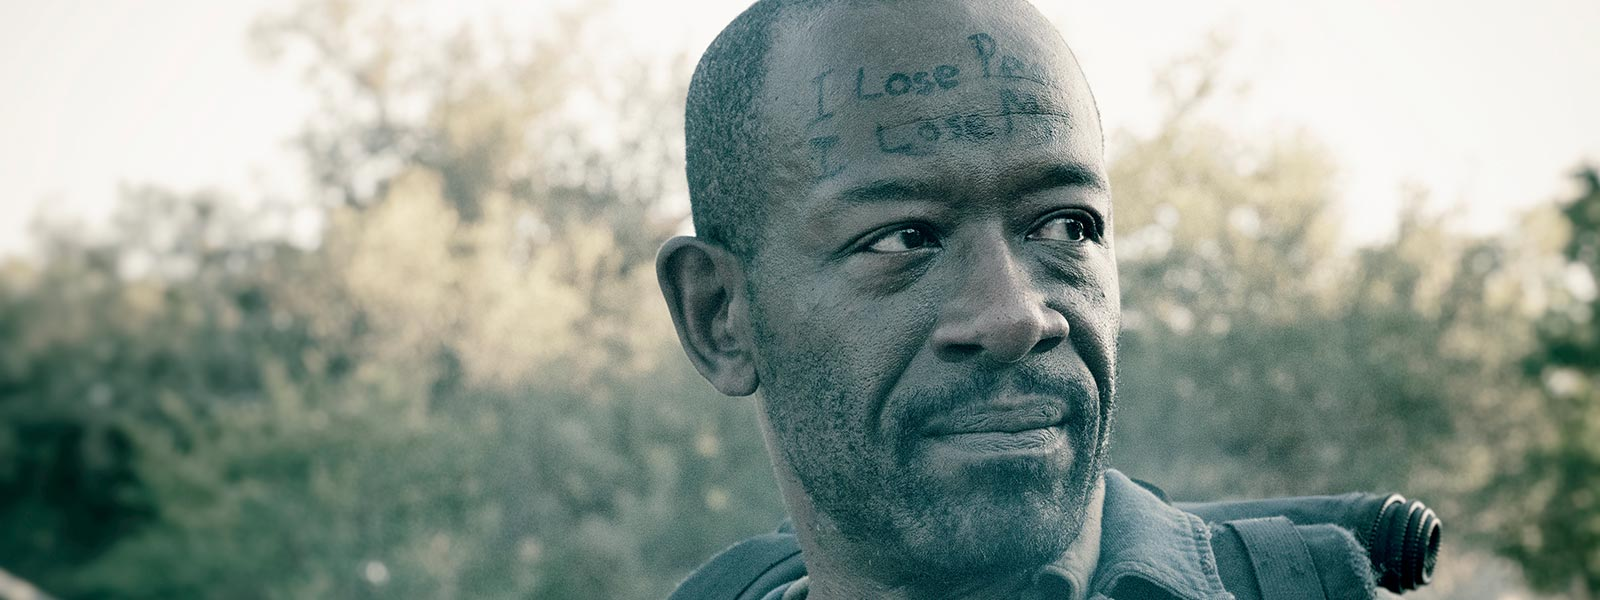 fear-the-walking-dead-episode-416-morgan-james-pre-800×600